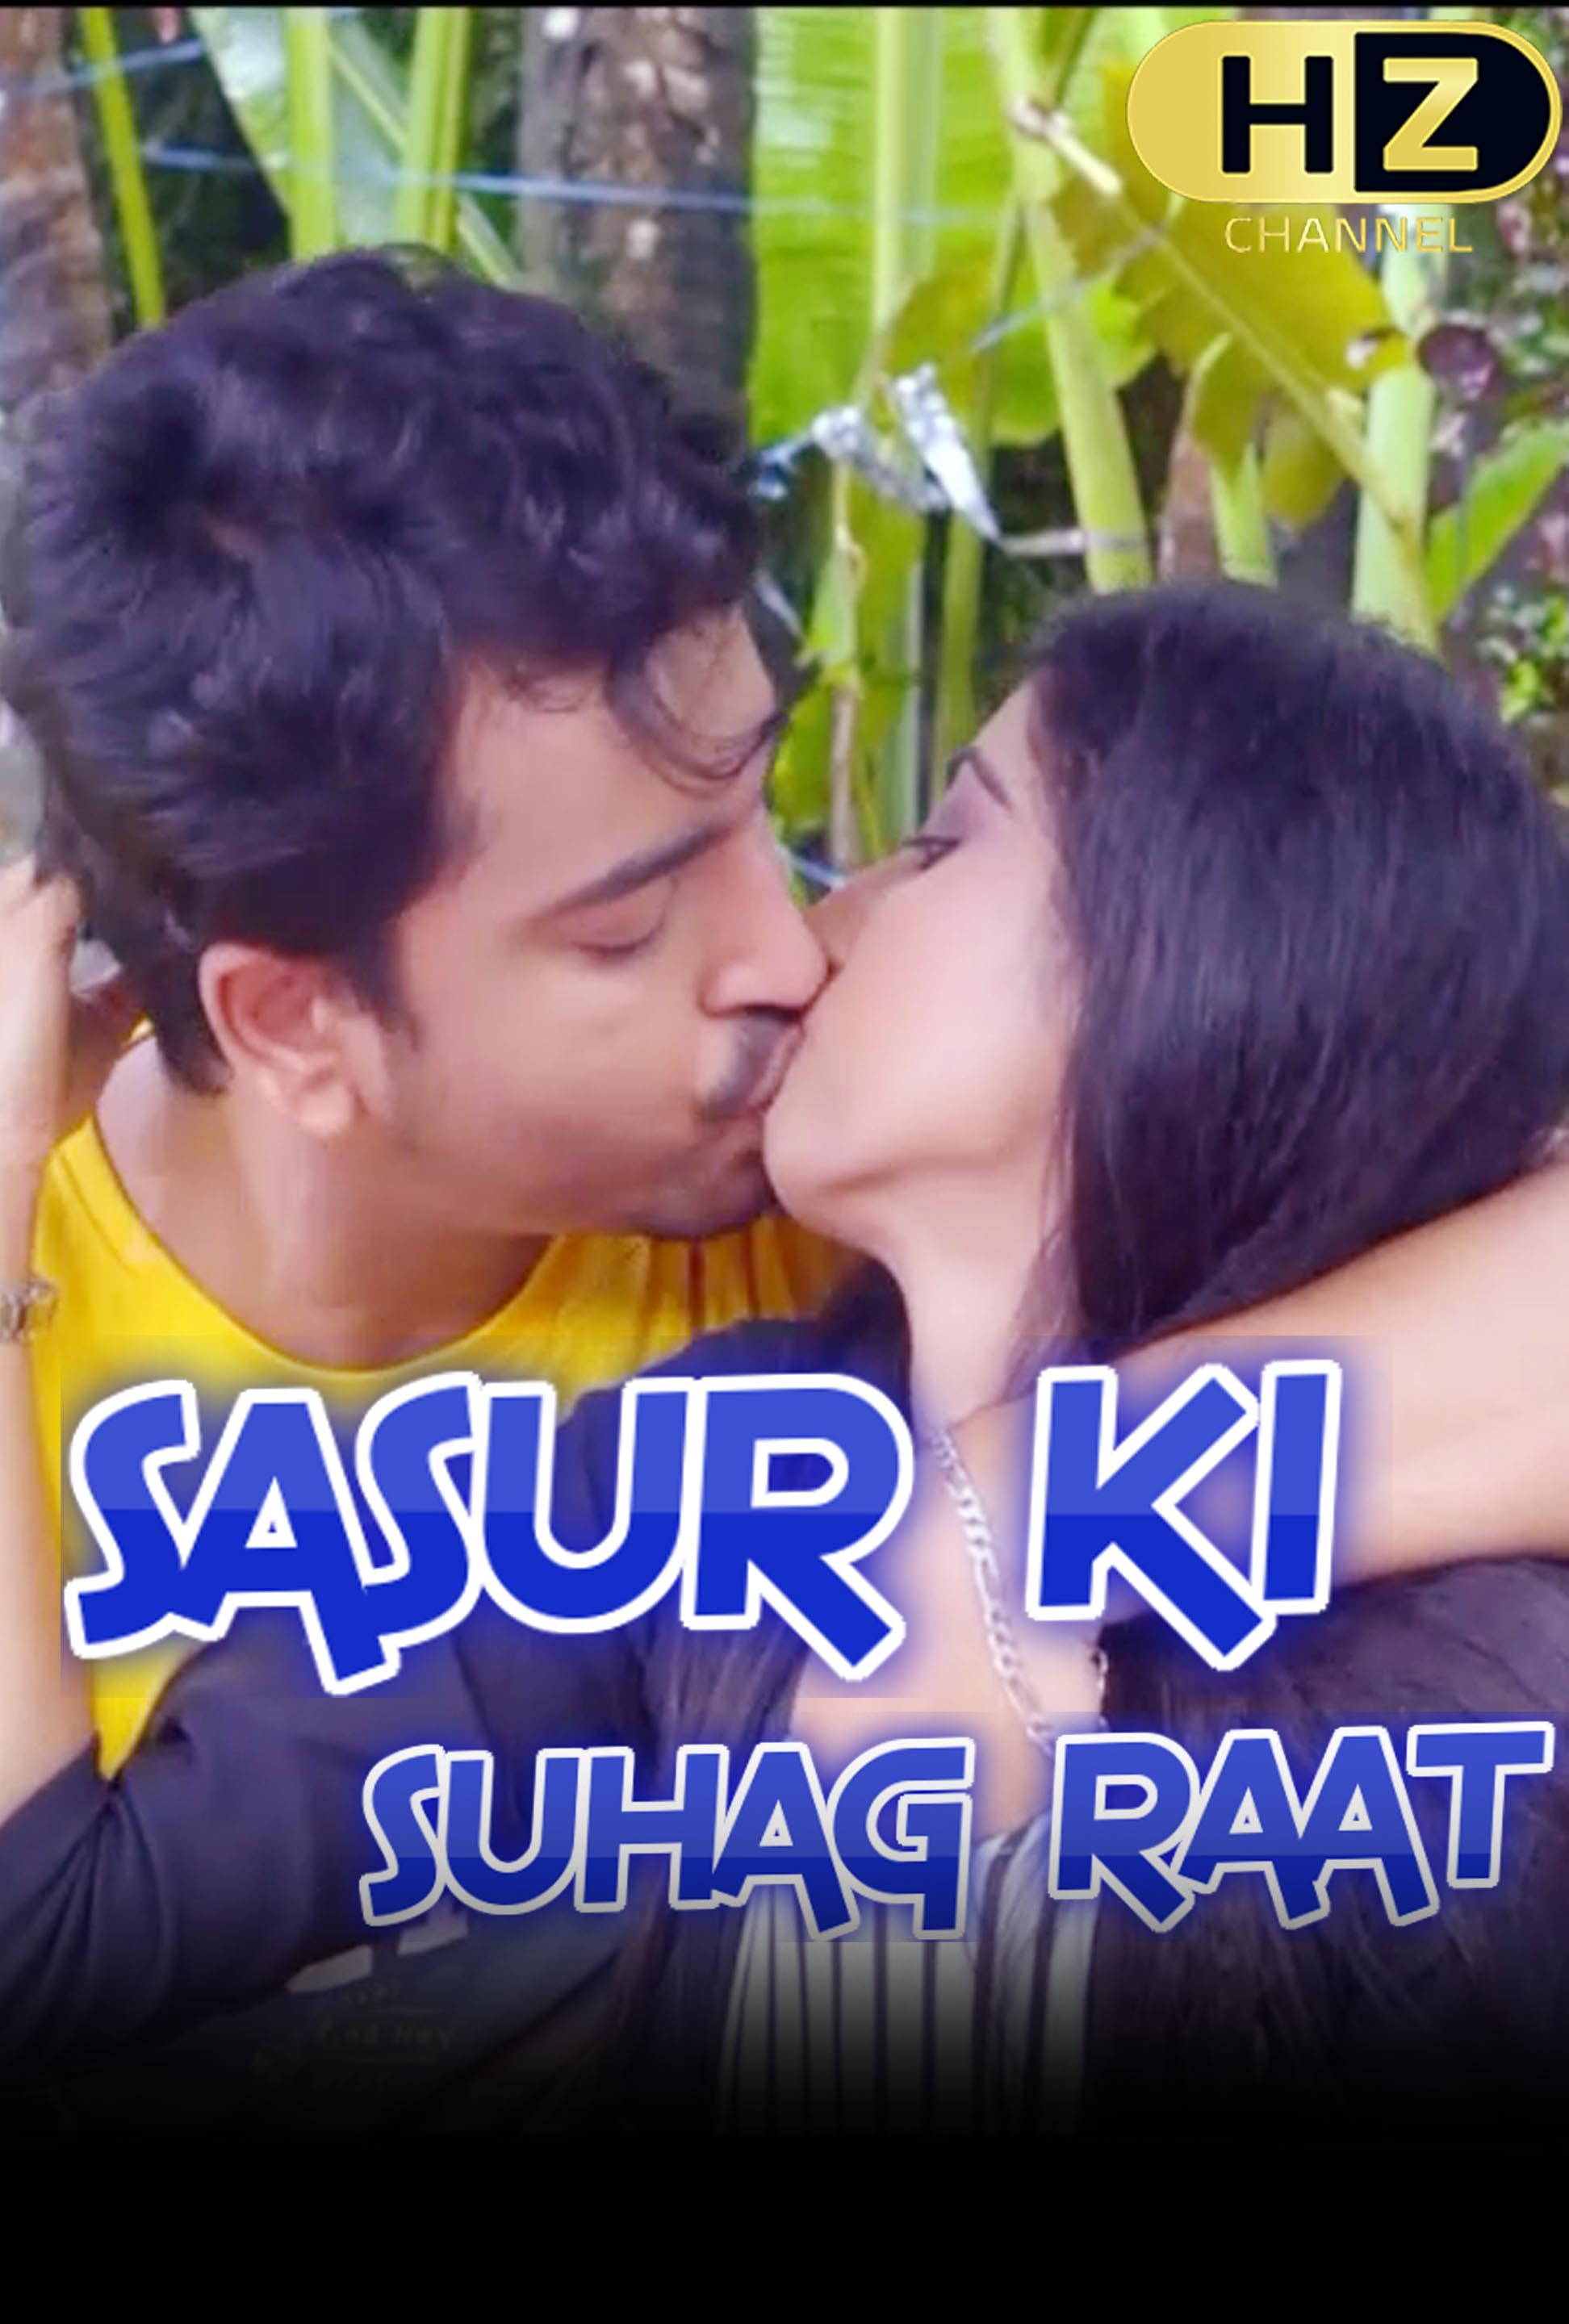 18+ Sasur Ki Suhagrat 2020 S01E01 HootzyChannel Hindi Web Series 720p HDRip 210MB Watch Online